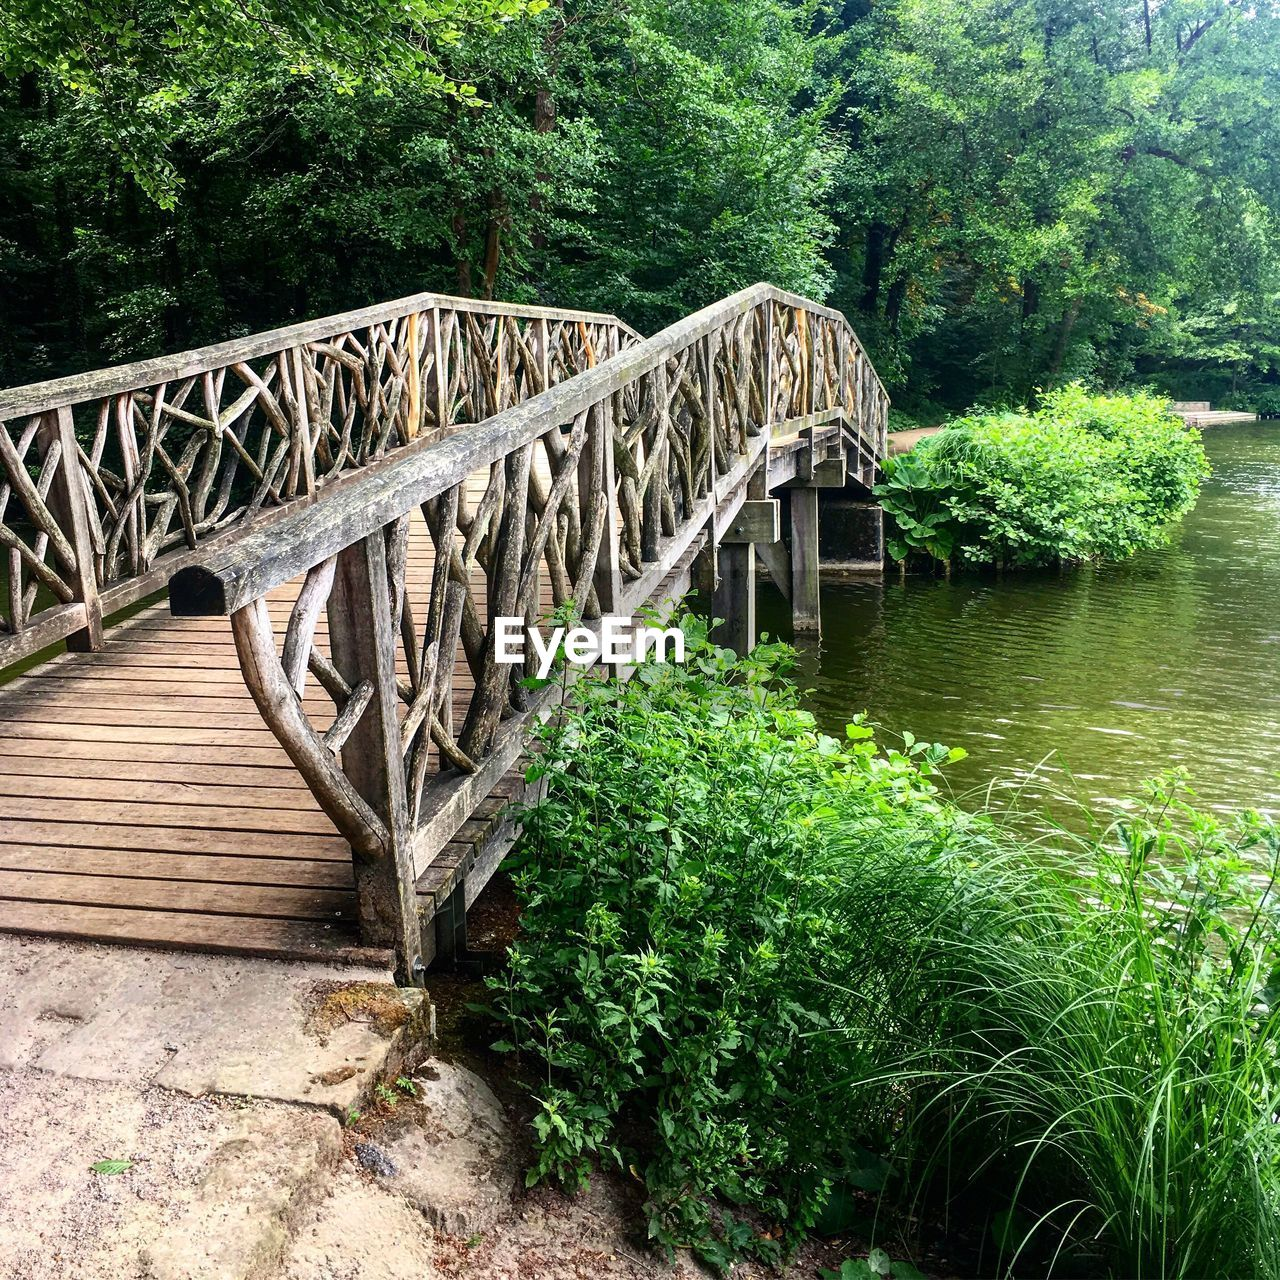 plant, tree, bridge, bridge - man made structure, water, connection, built structure, growth, architecture, forest, nature, no people, green color, day, river, footbridge, beauty in nature, railing, land, outdoors, wood, arch bridge, flowing water